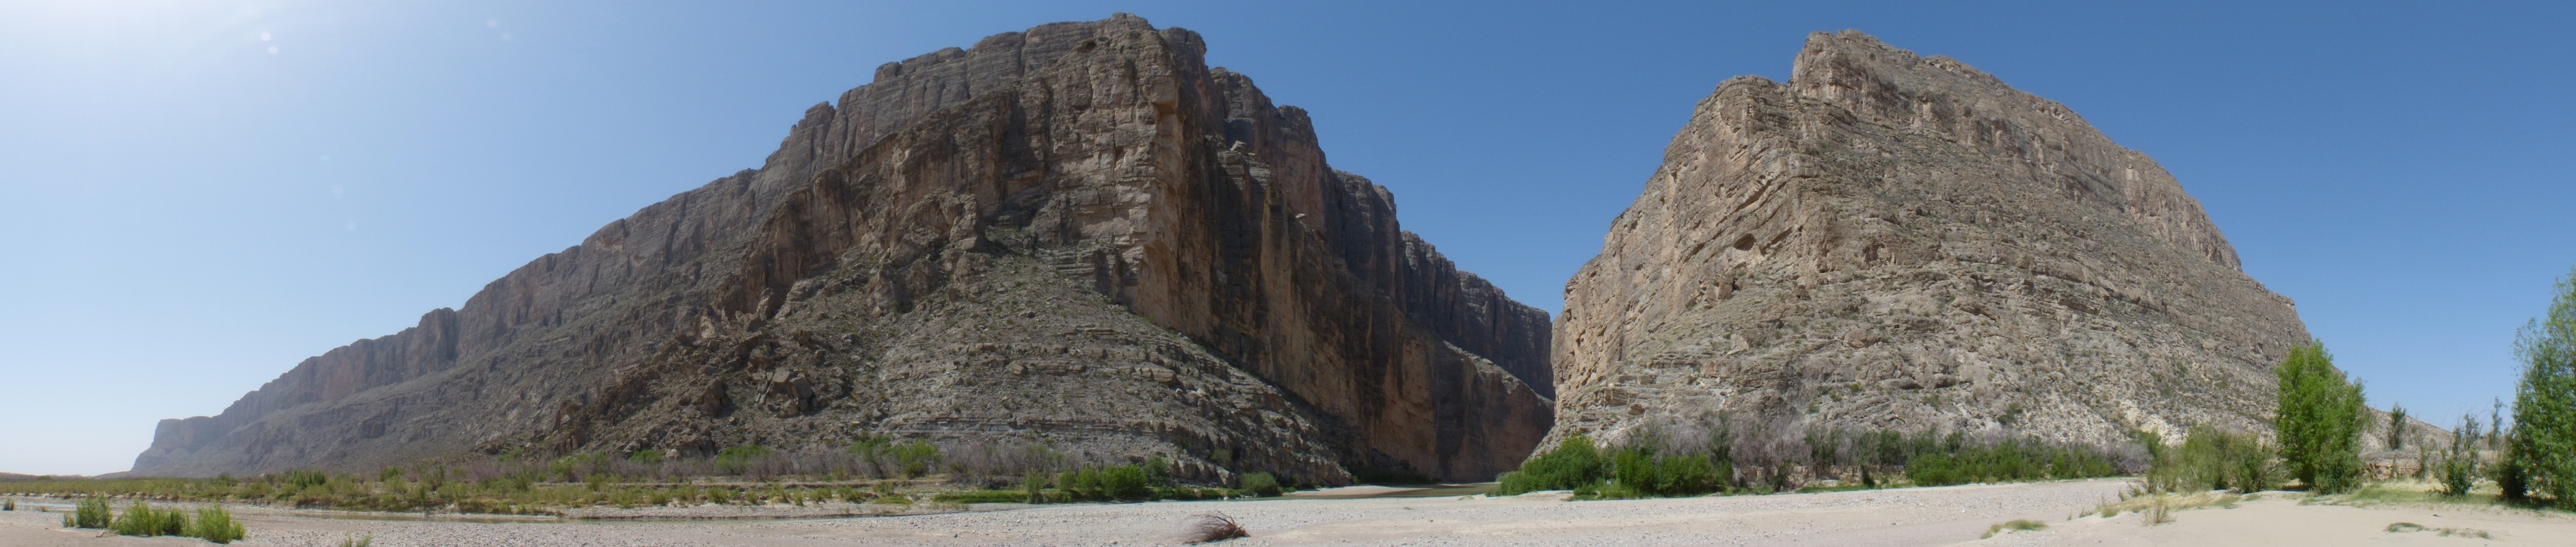 P1010560_Santa_Elena_Canyon_panoramic_180.jpg